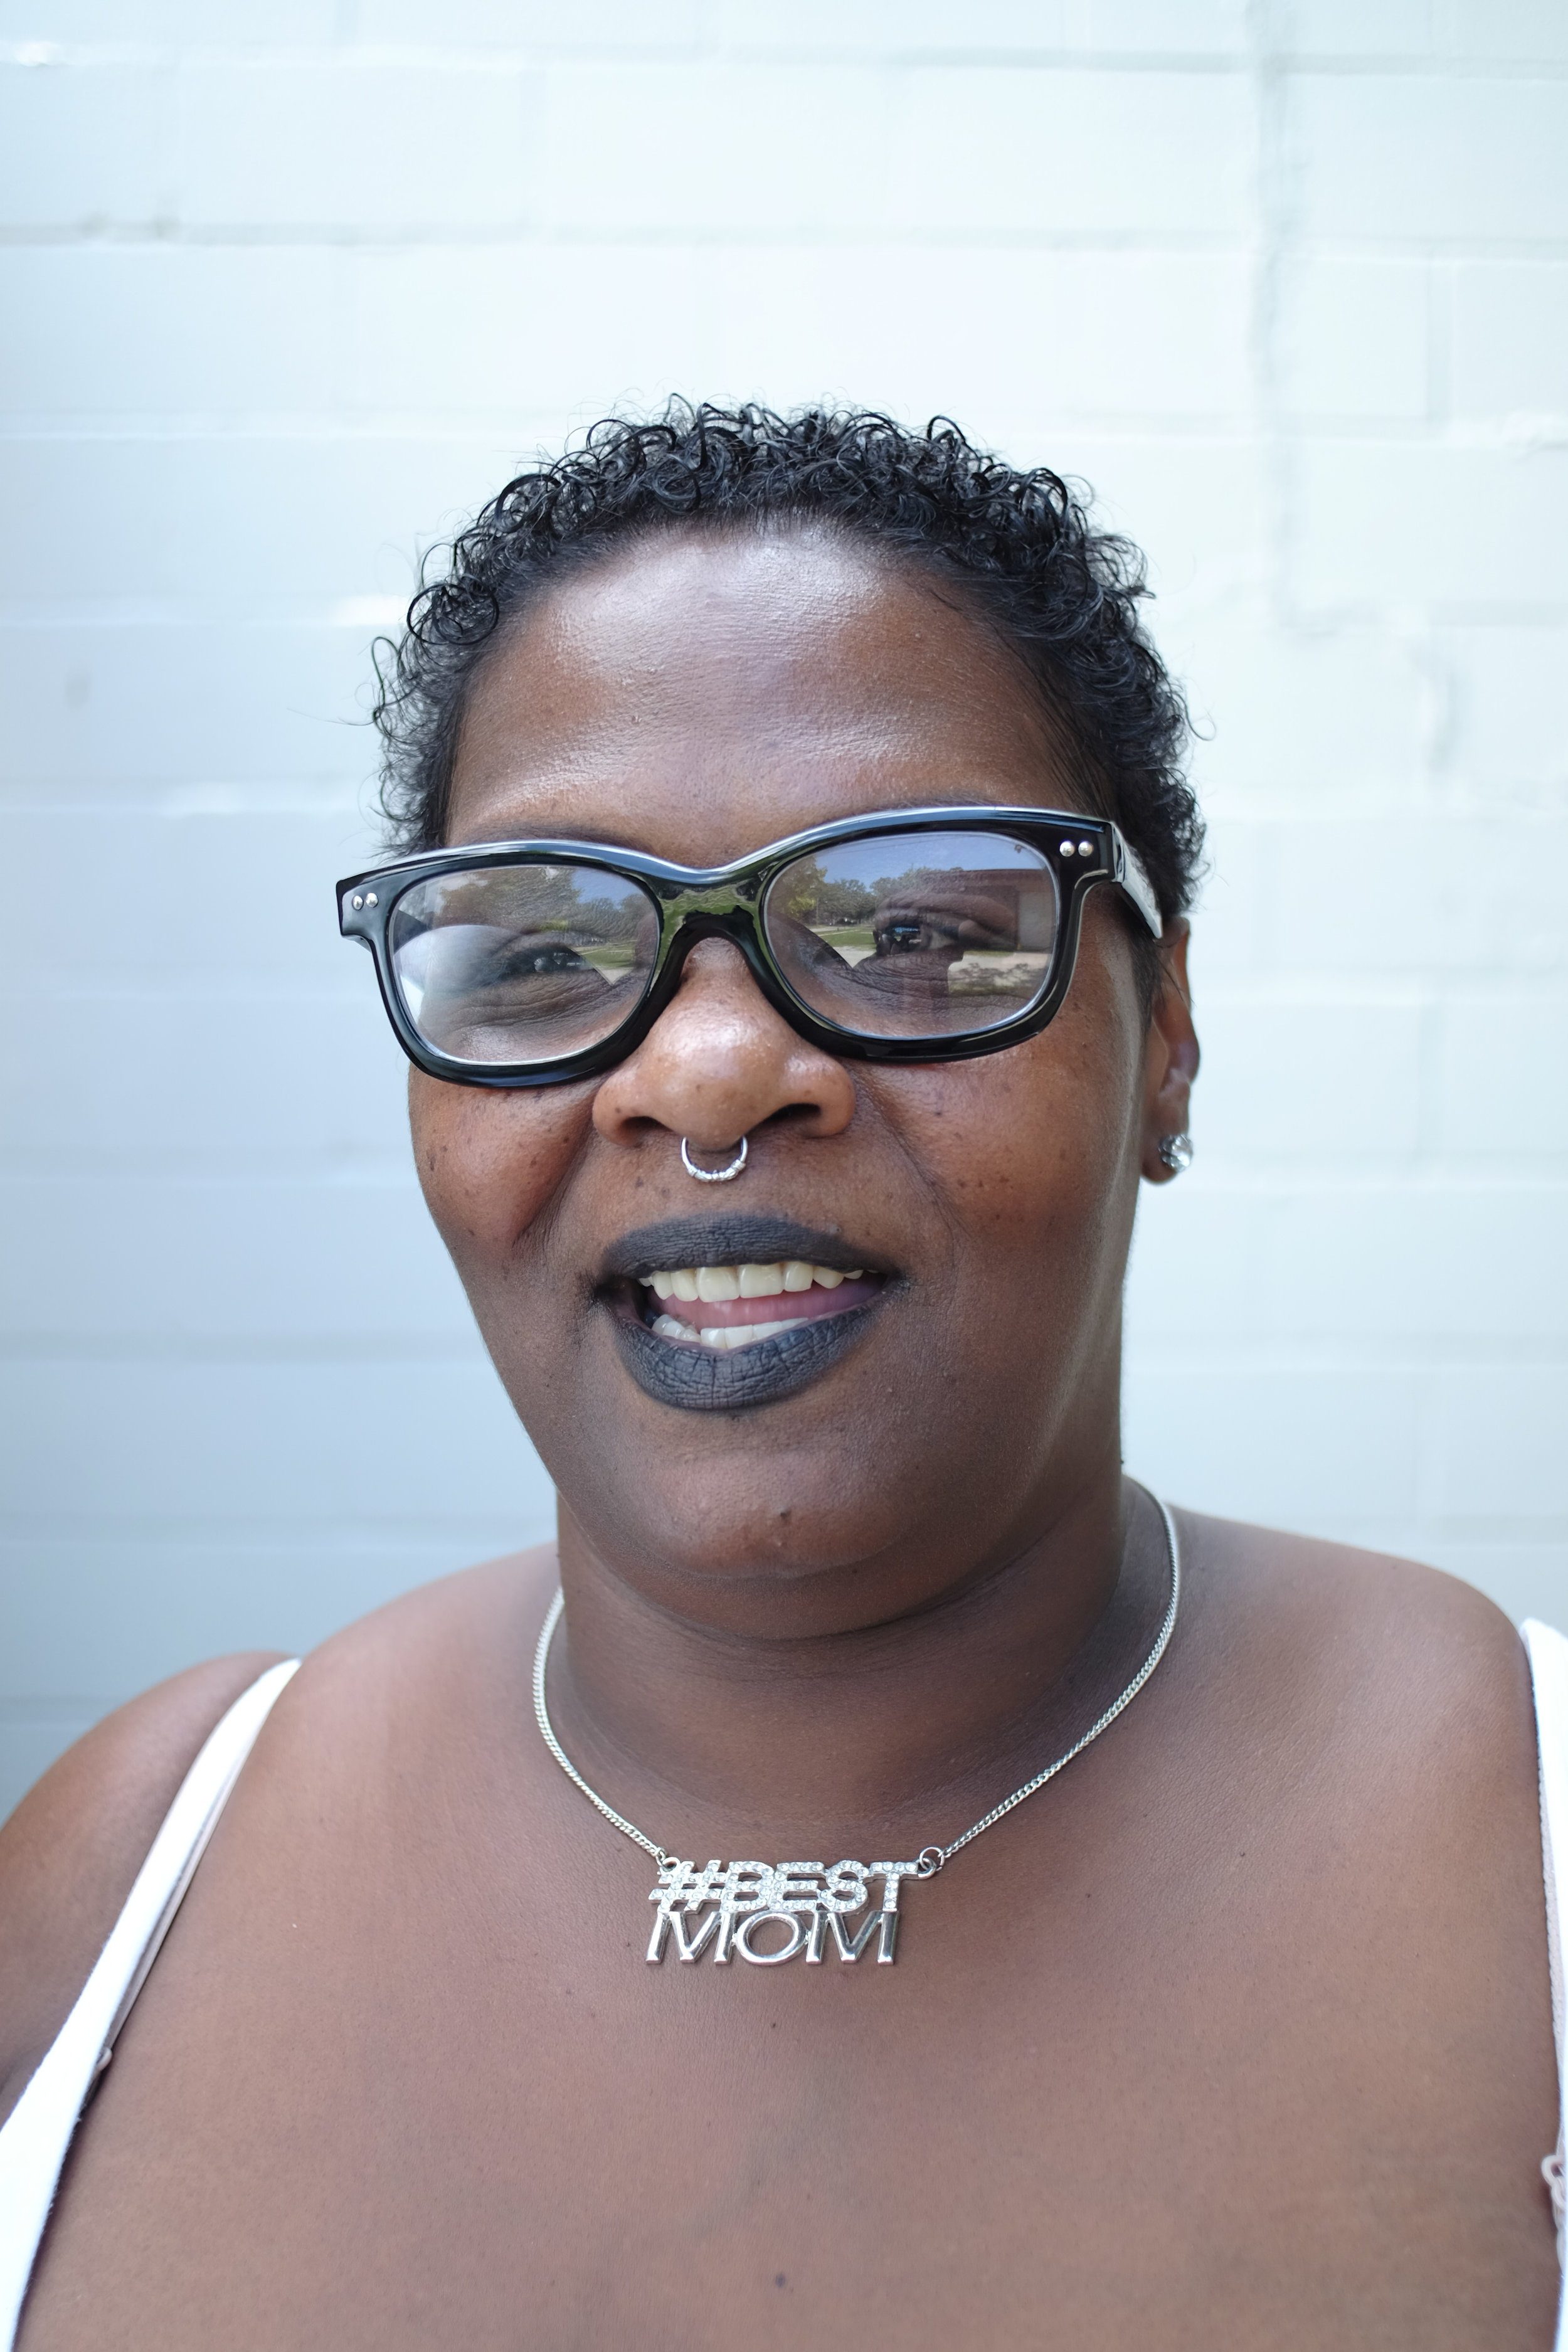 Da'Wanda helps manage  Sacred Suds , a community center for neighbors who gather to do laundry, eat meals, check their emails, etc. Da'Wanda is an awesome neighbor with a huge heart for the City. She is also working on a masters degree!